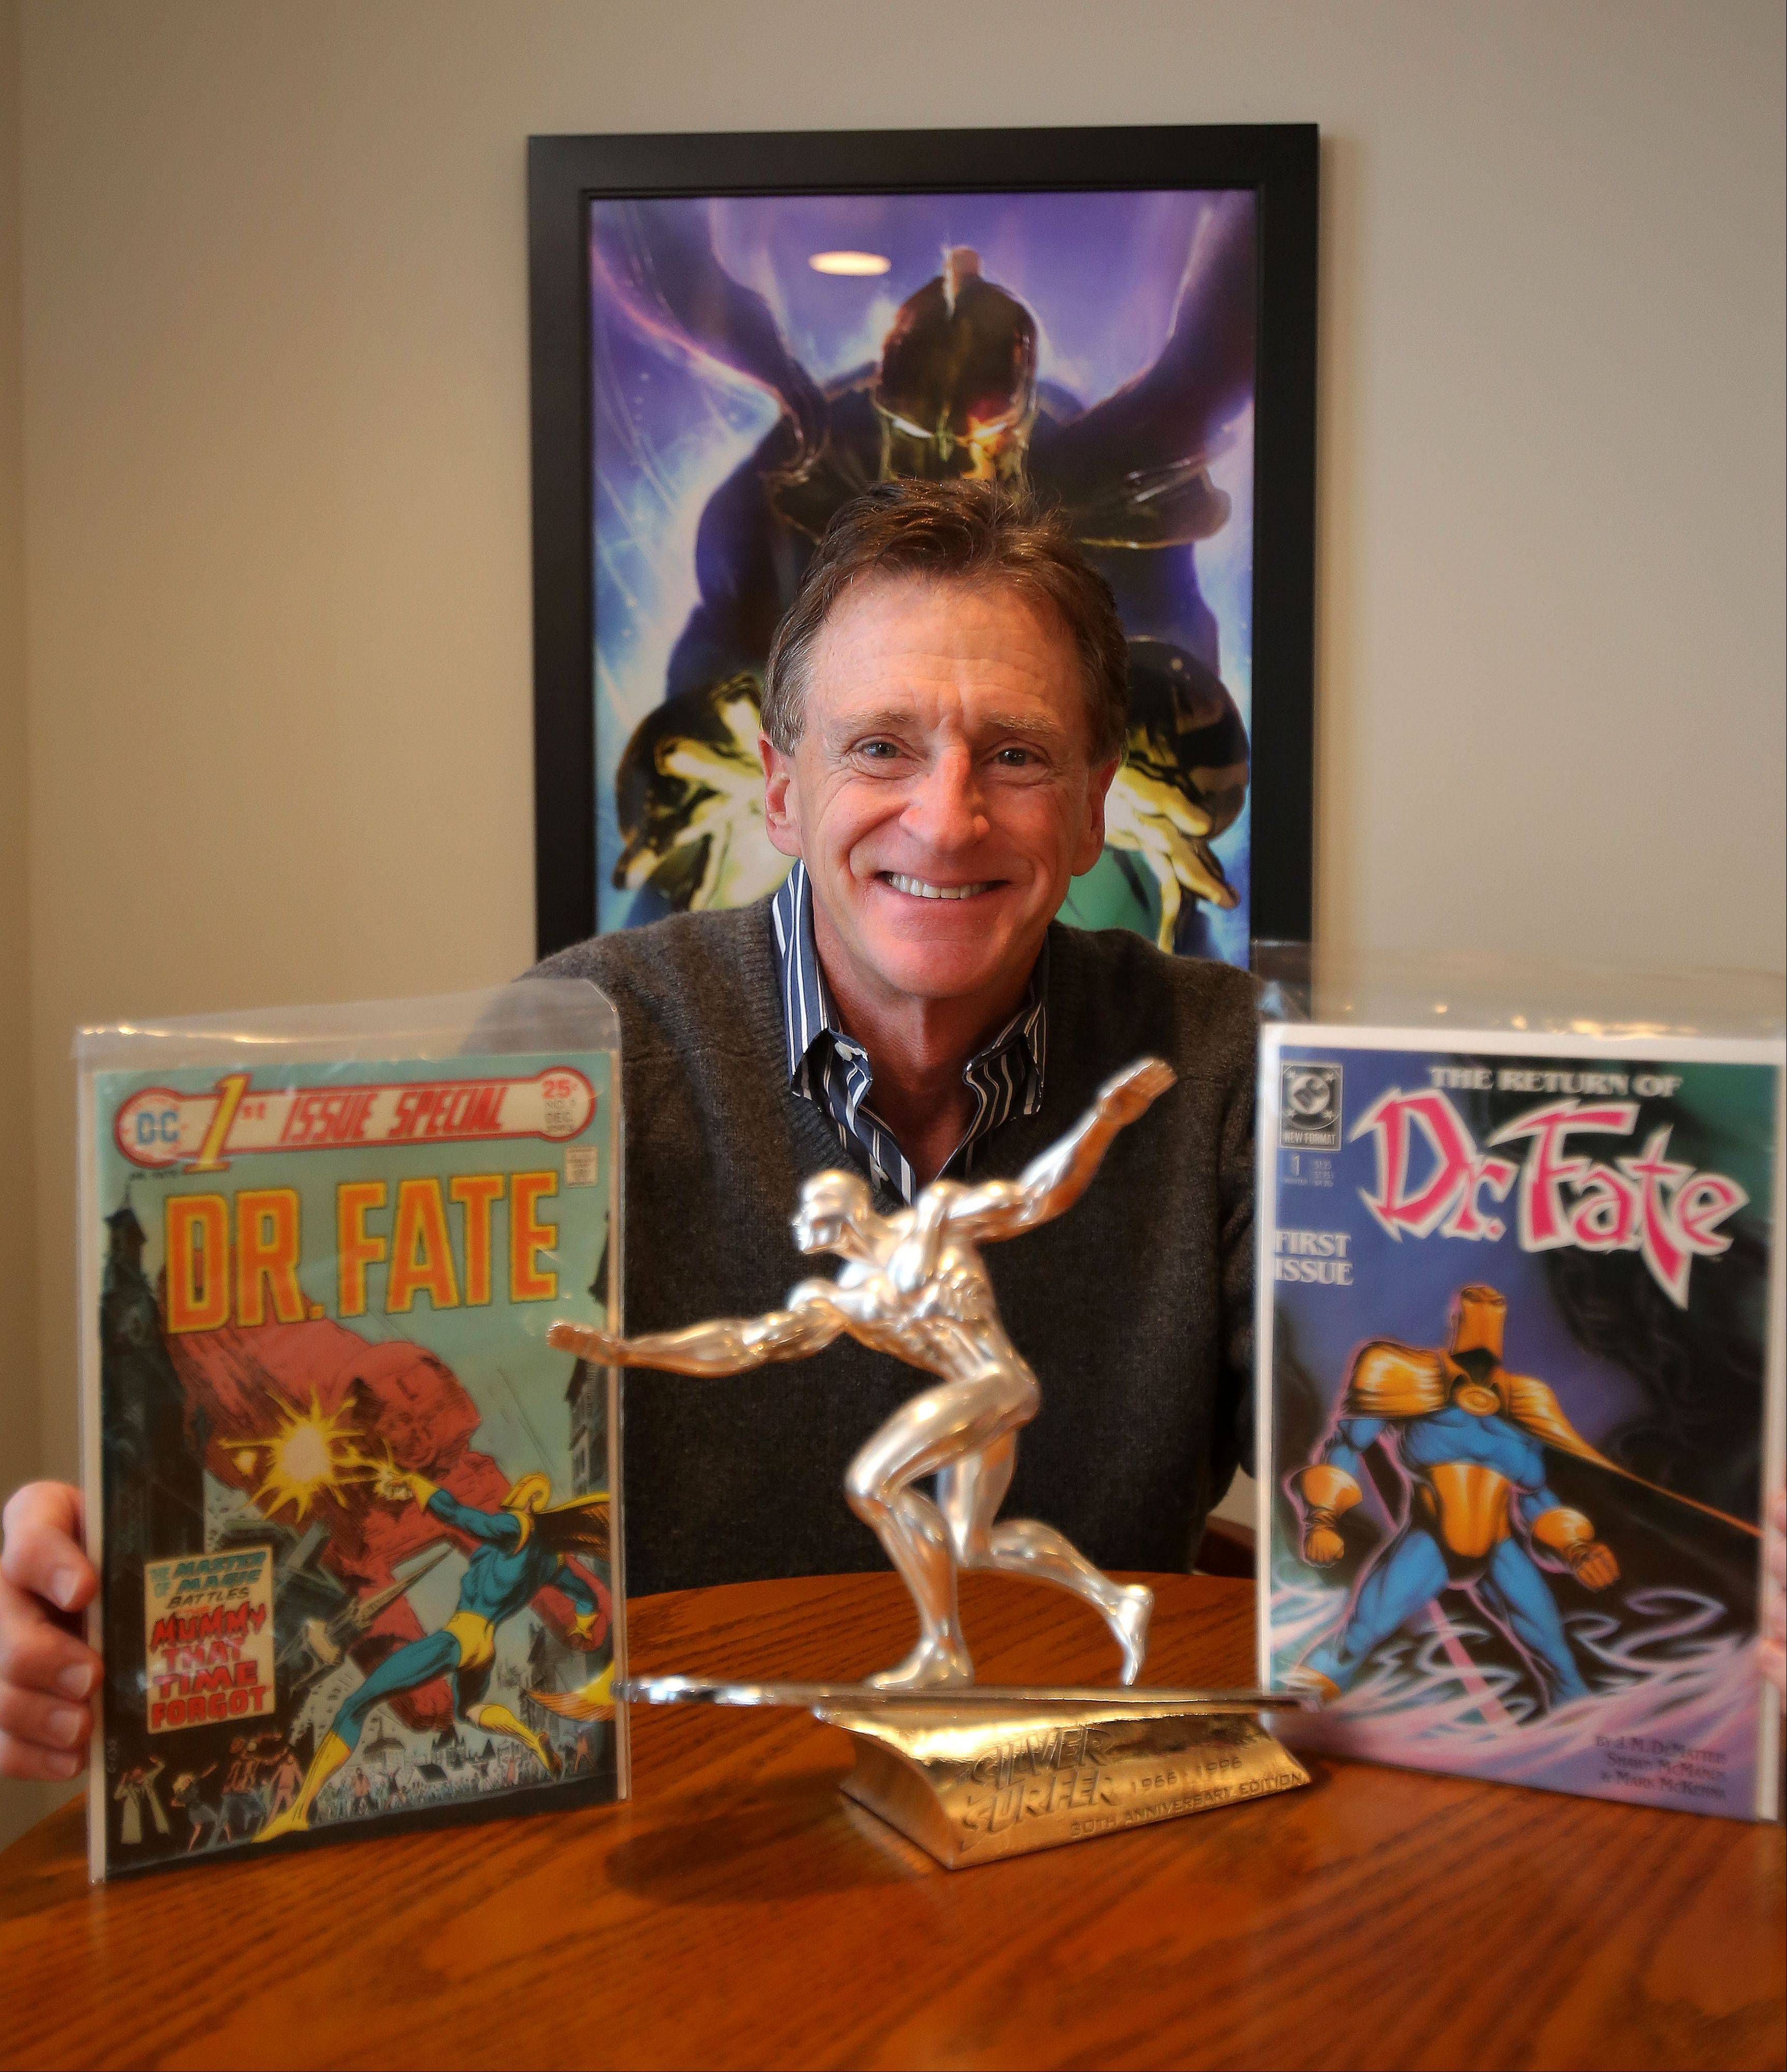 Steven Landman of Kildeer has auctioned a portion of his comic book collection. Landman suffers from a rare autoimmune disease and the money will help with medical expenses.